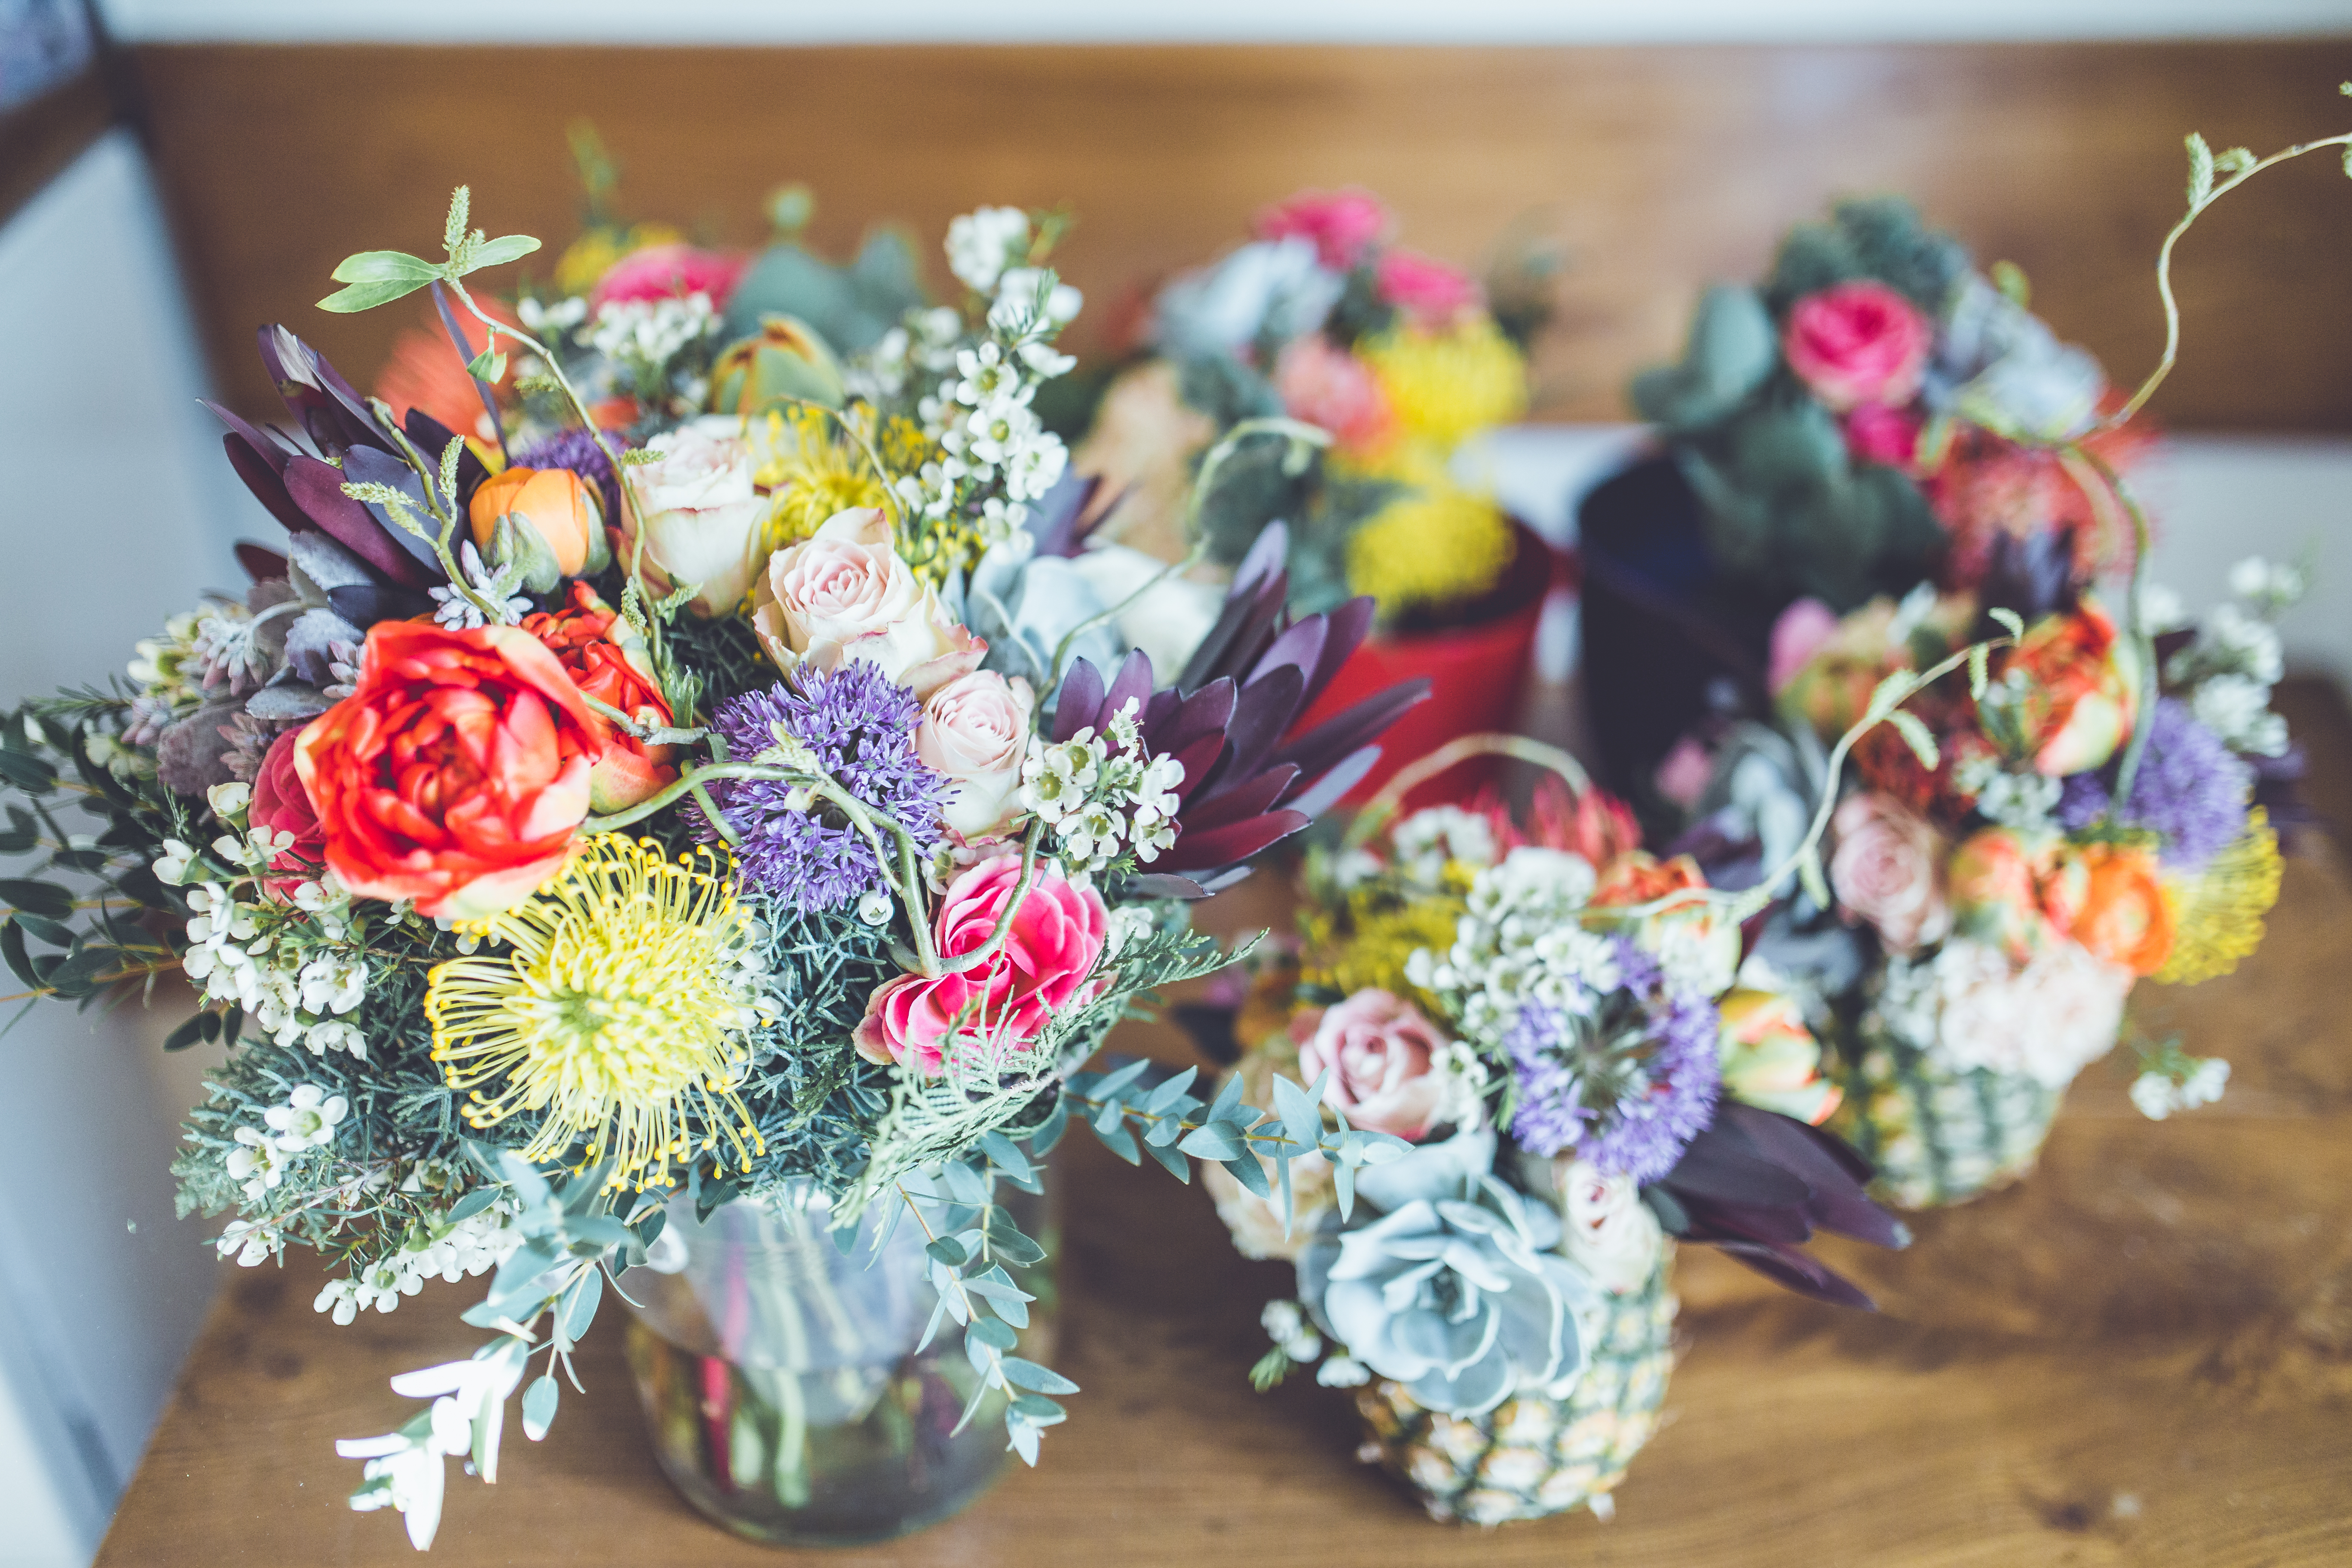 Diy Mothers Day Flower Arrangements Picked Fresh To Surprise Mom